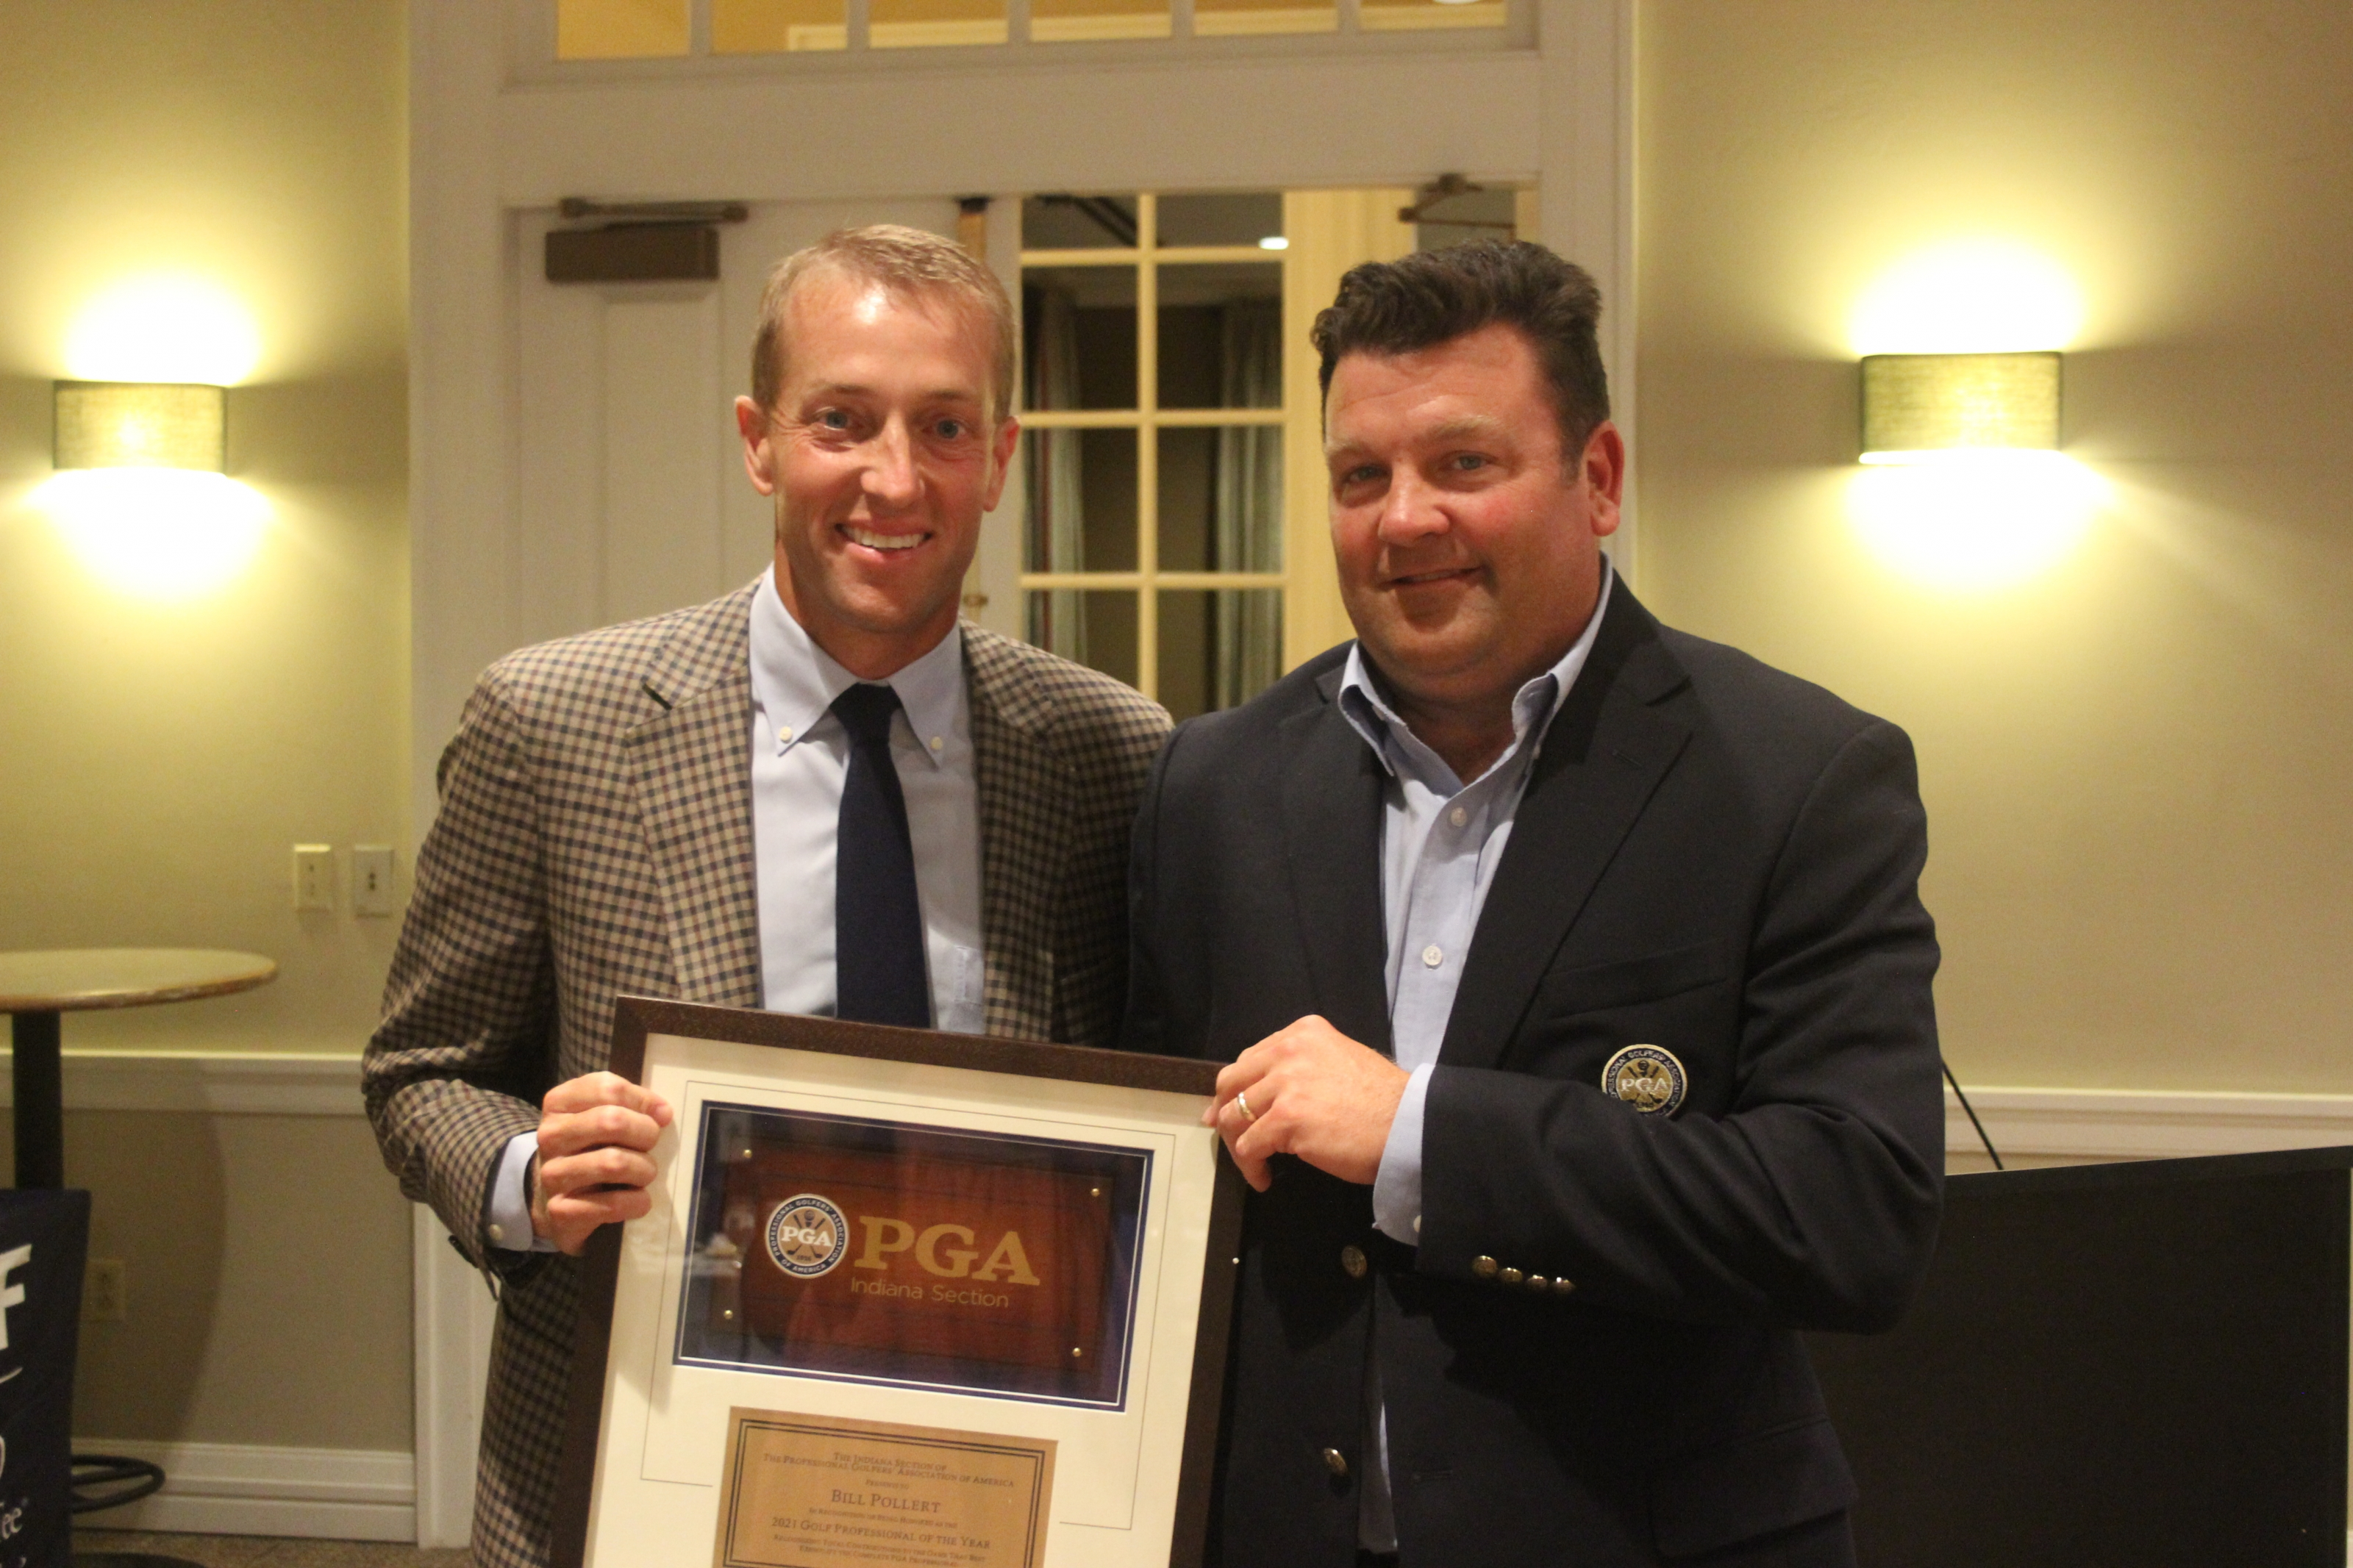 Bill Pollert Recognized as 2021 Indiana PGA Golf Professional of the Year; Brittany Kelly Honored as the 2022 Recipient